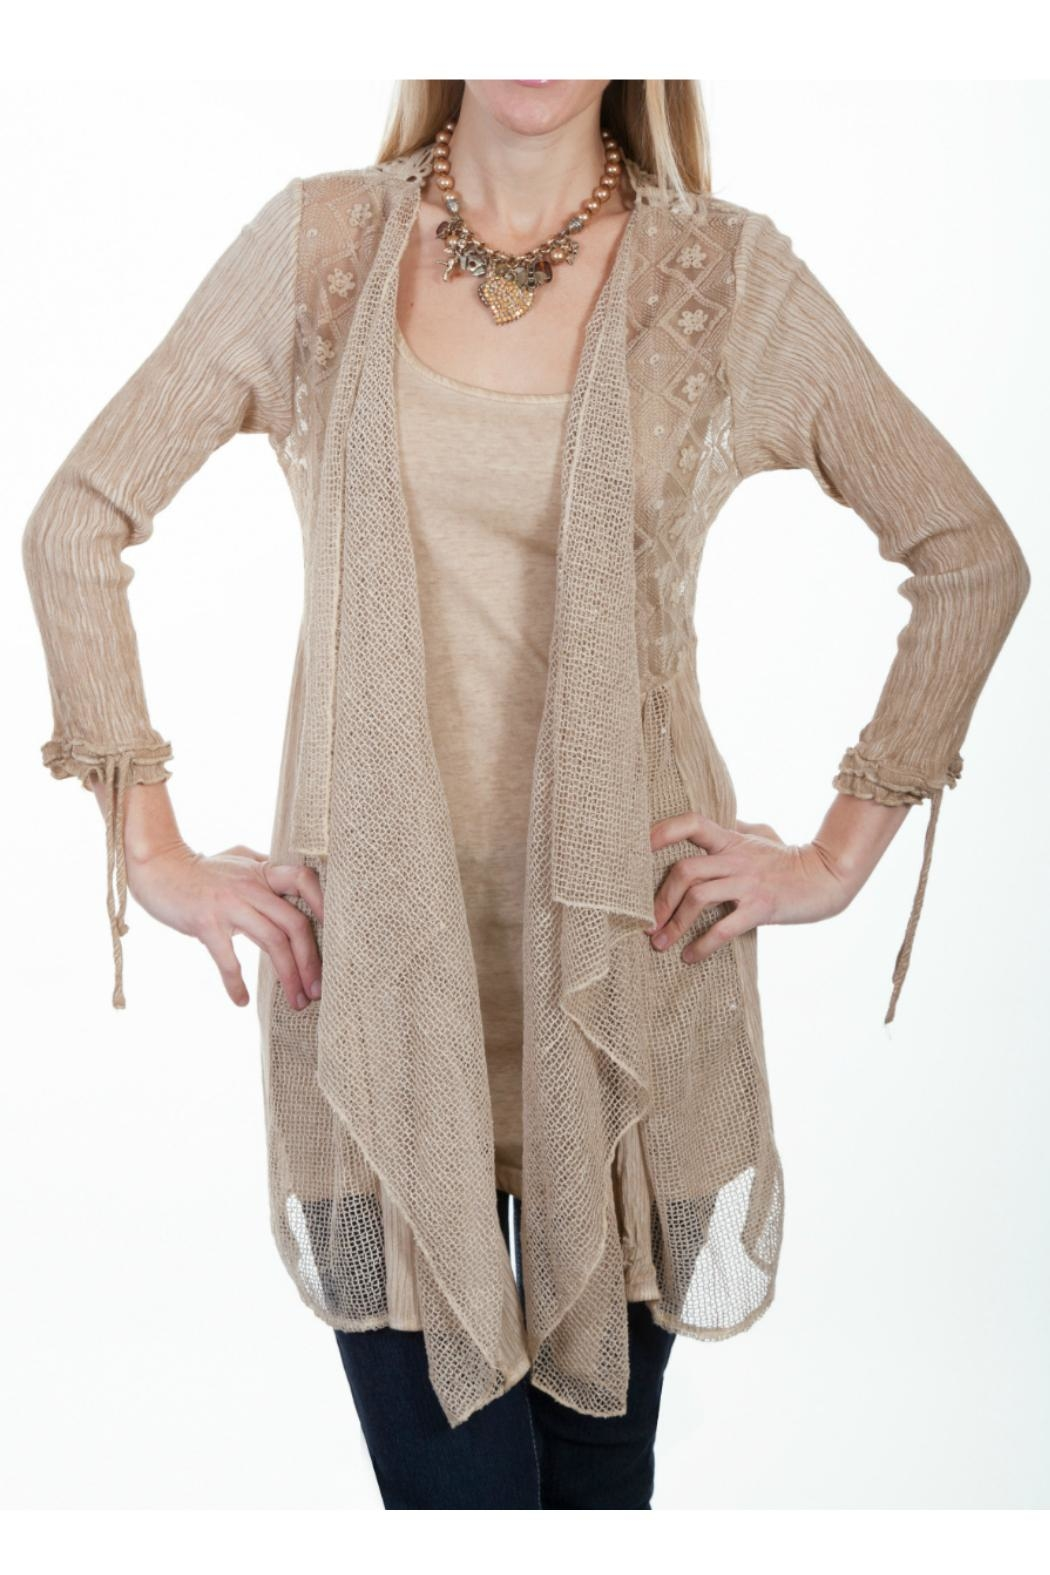 Scully Lace Cardigan & Tank Set from Virginia by Mary Barnett's ...